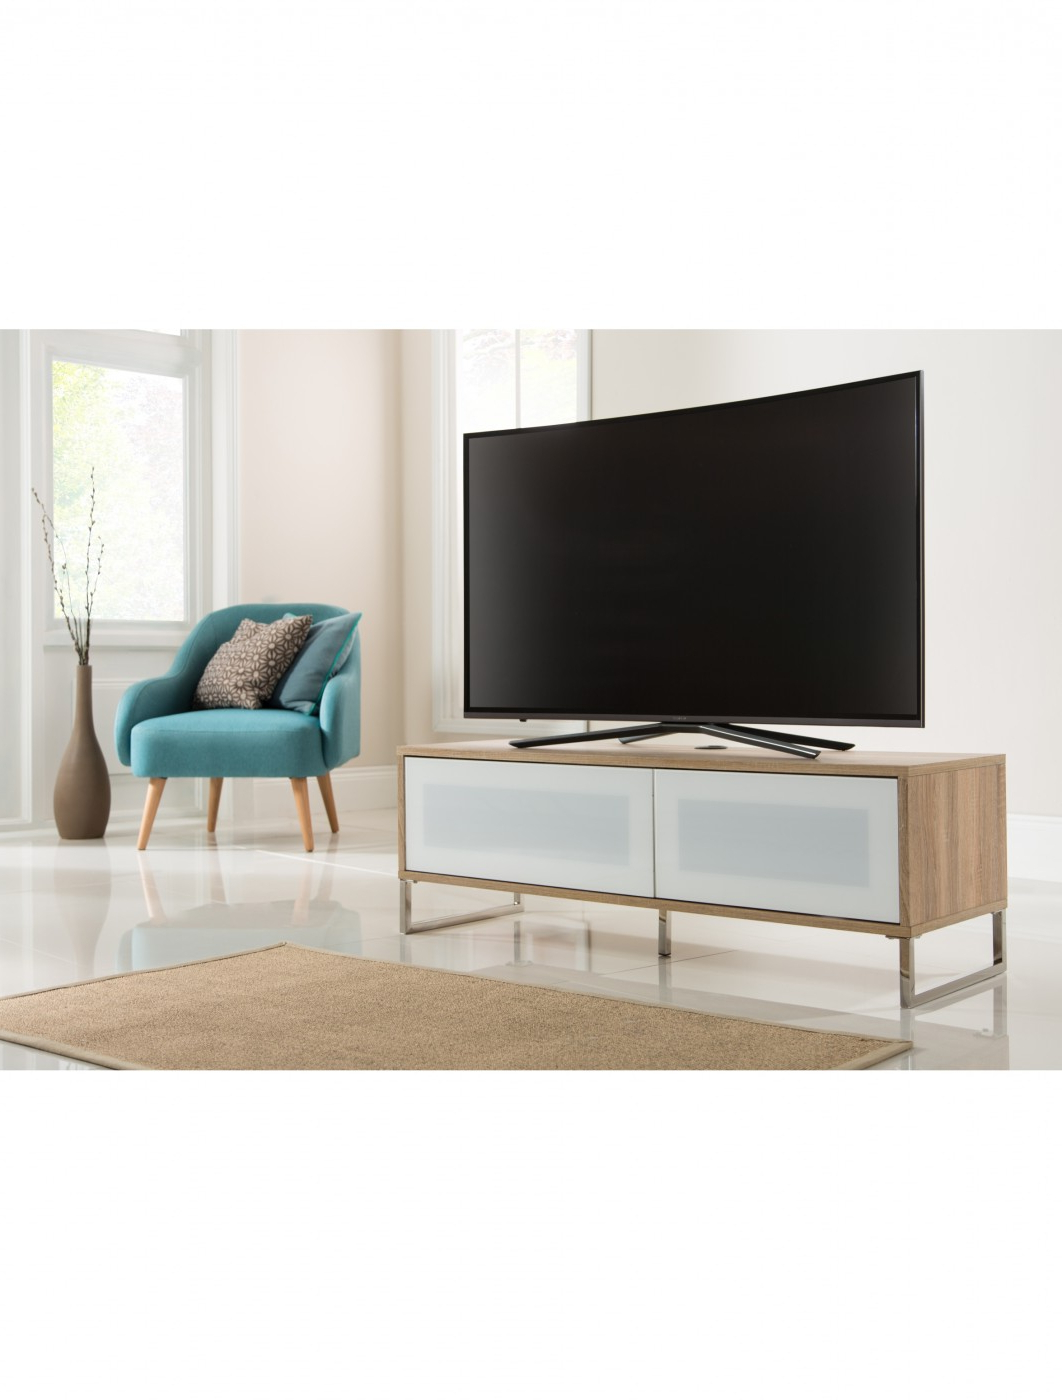 Alphason Helium 1200mm Tv Stand Adhe1200 Lo   121 Tv Mounts For Compton Ivory Extra Wide Tv Stands (View 3 of 20)